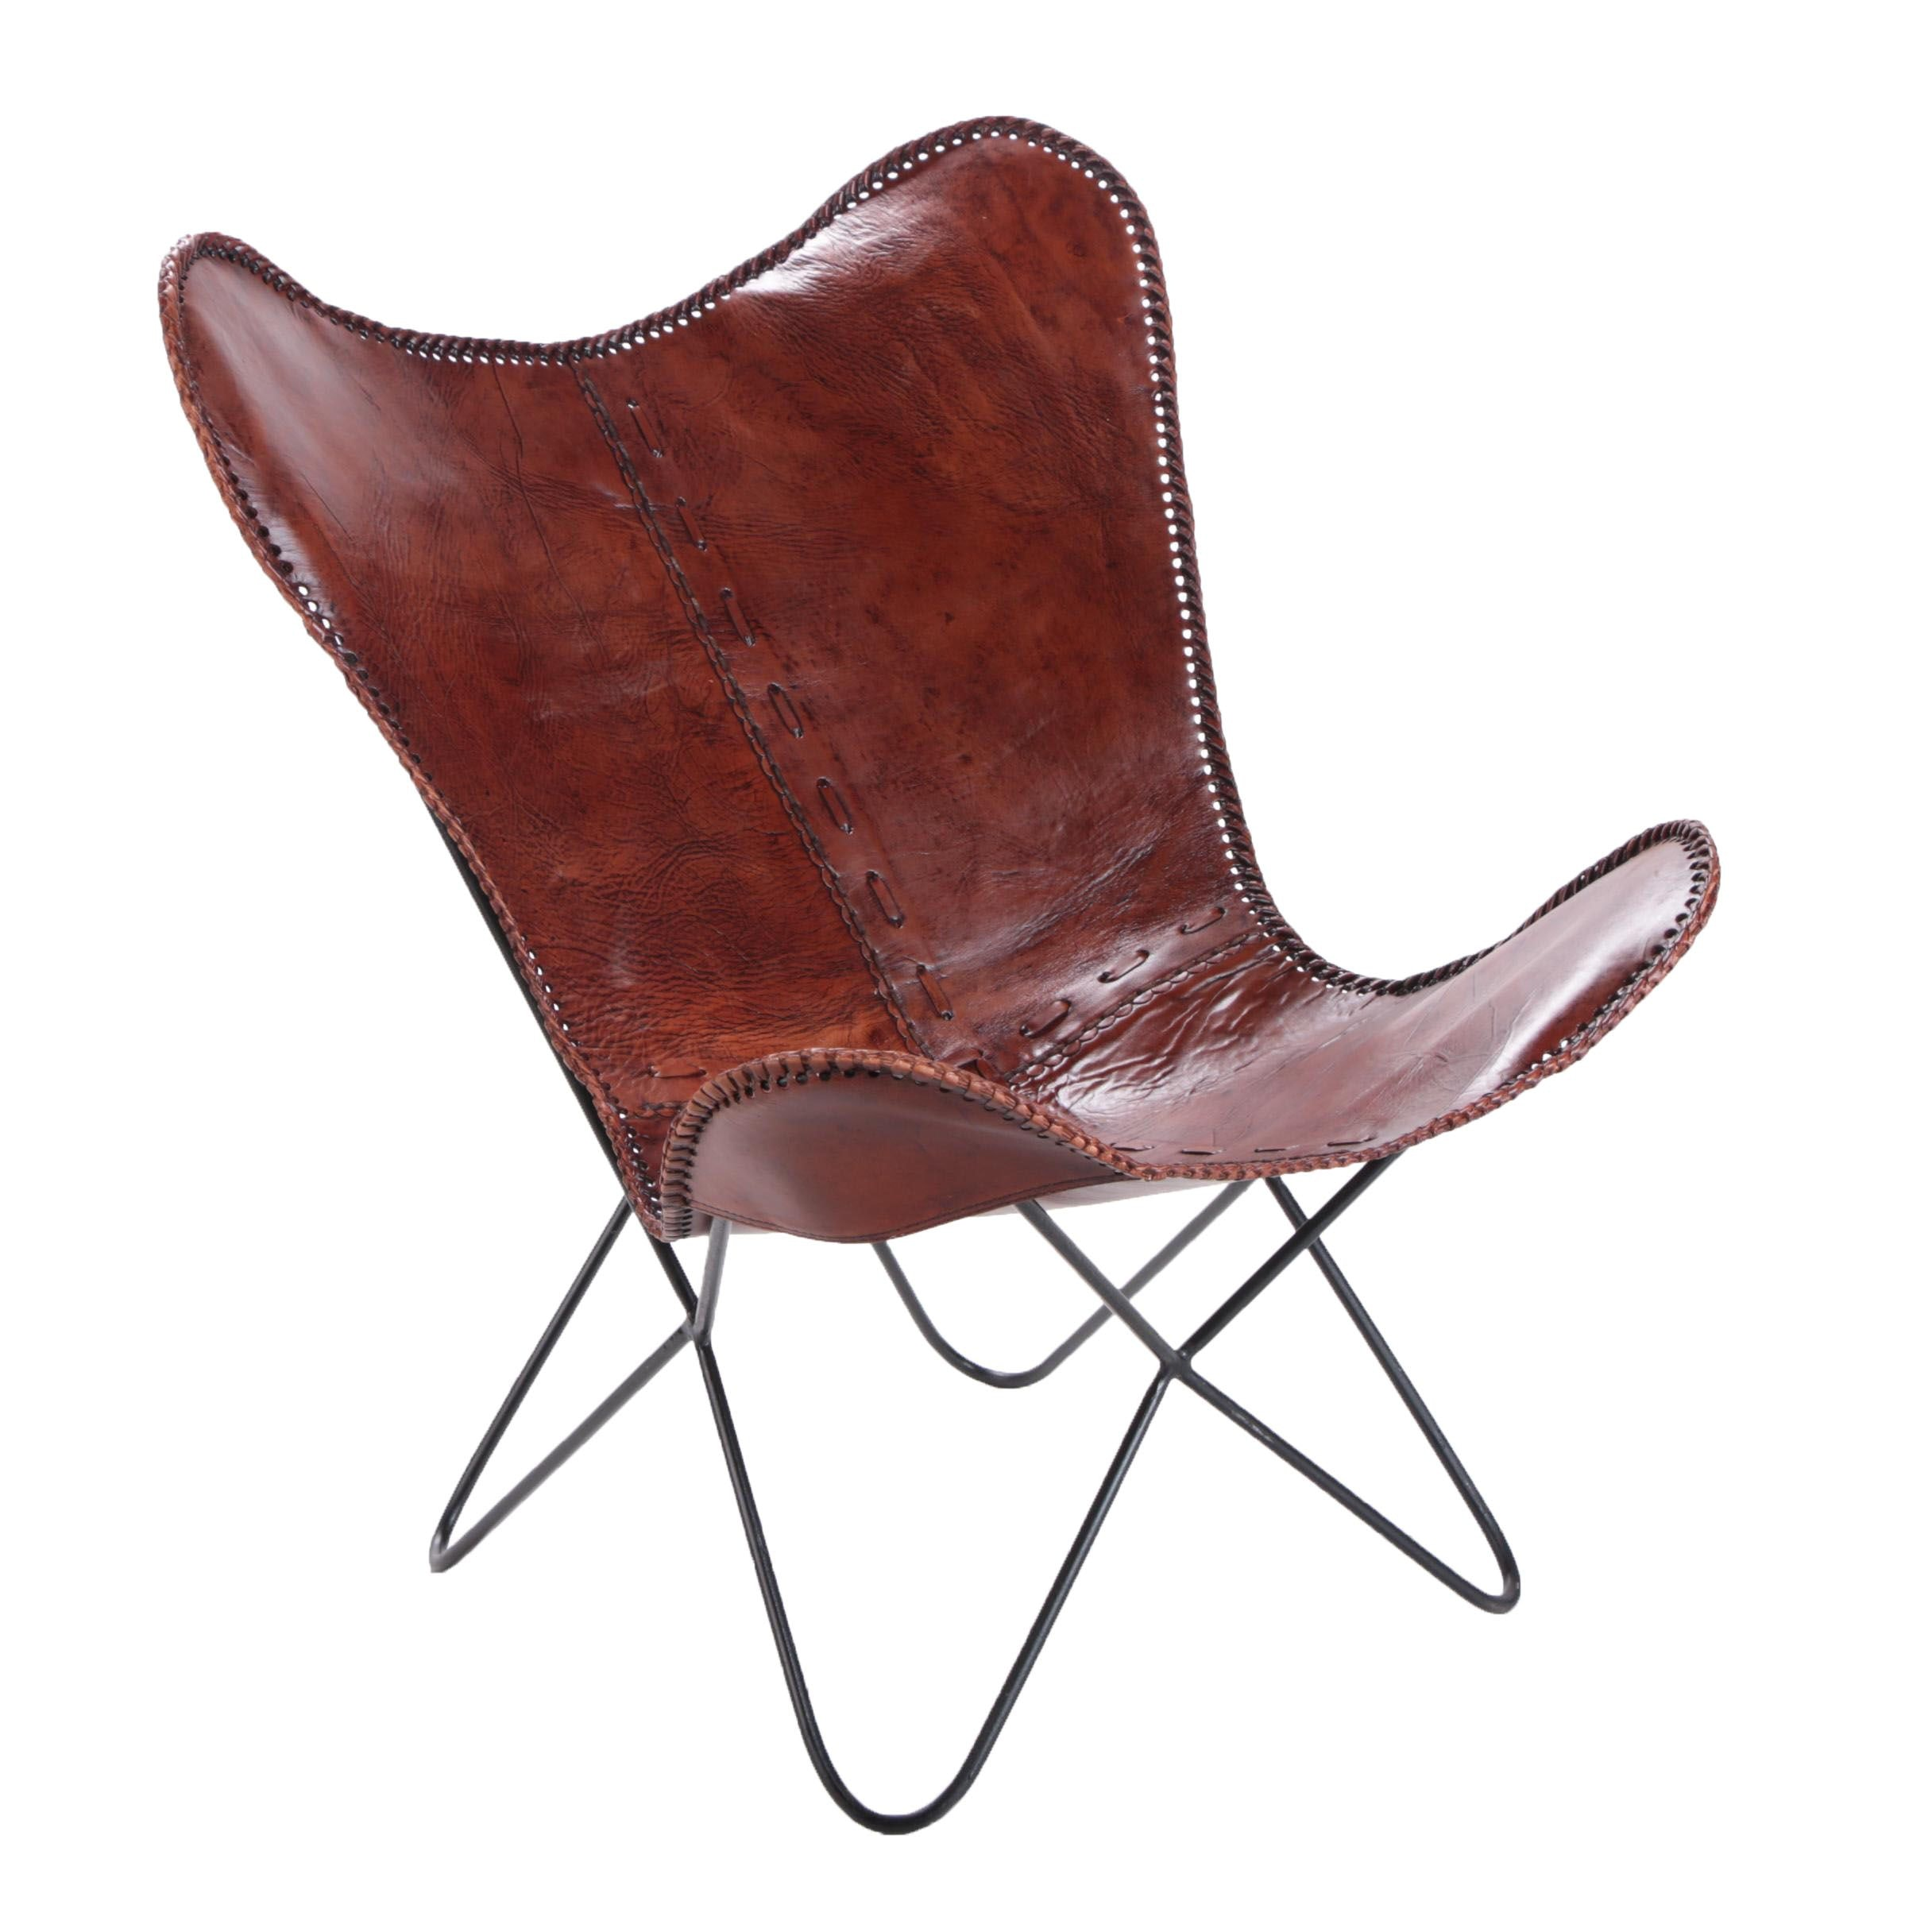 Stitched Leather Butterfly Chair ...